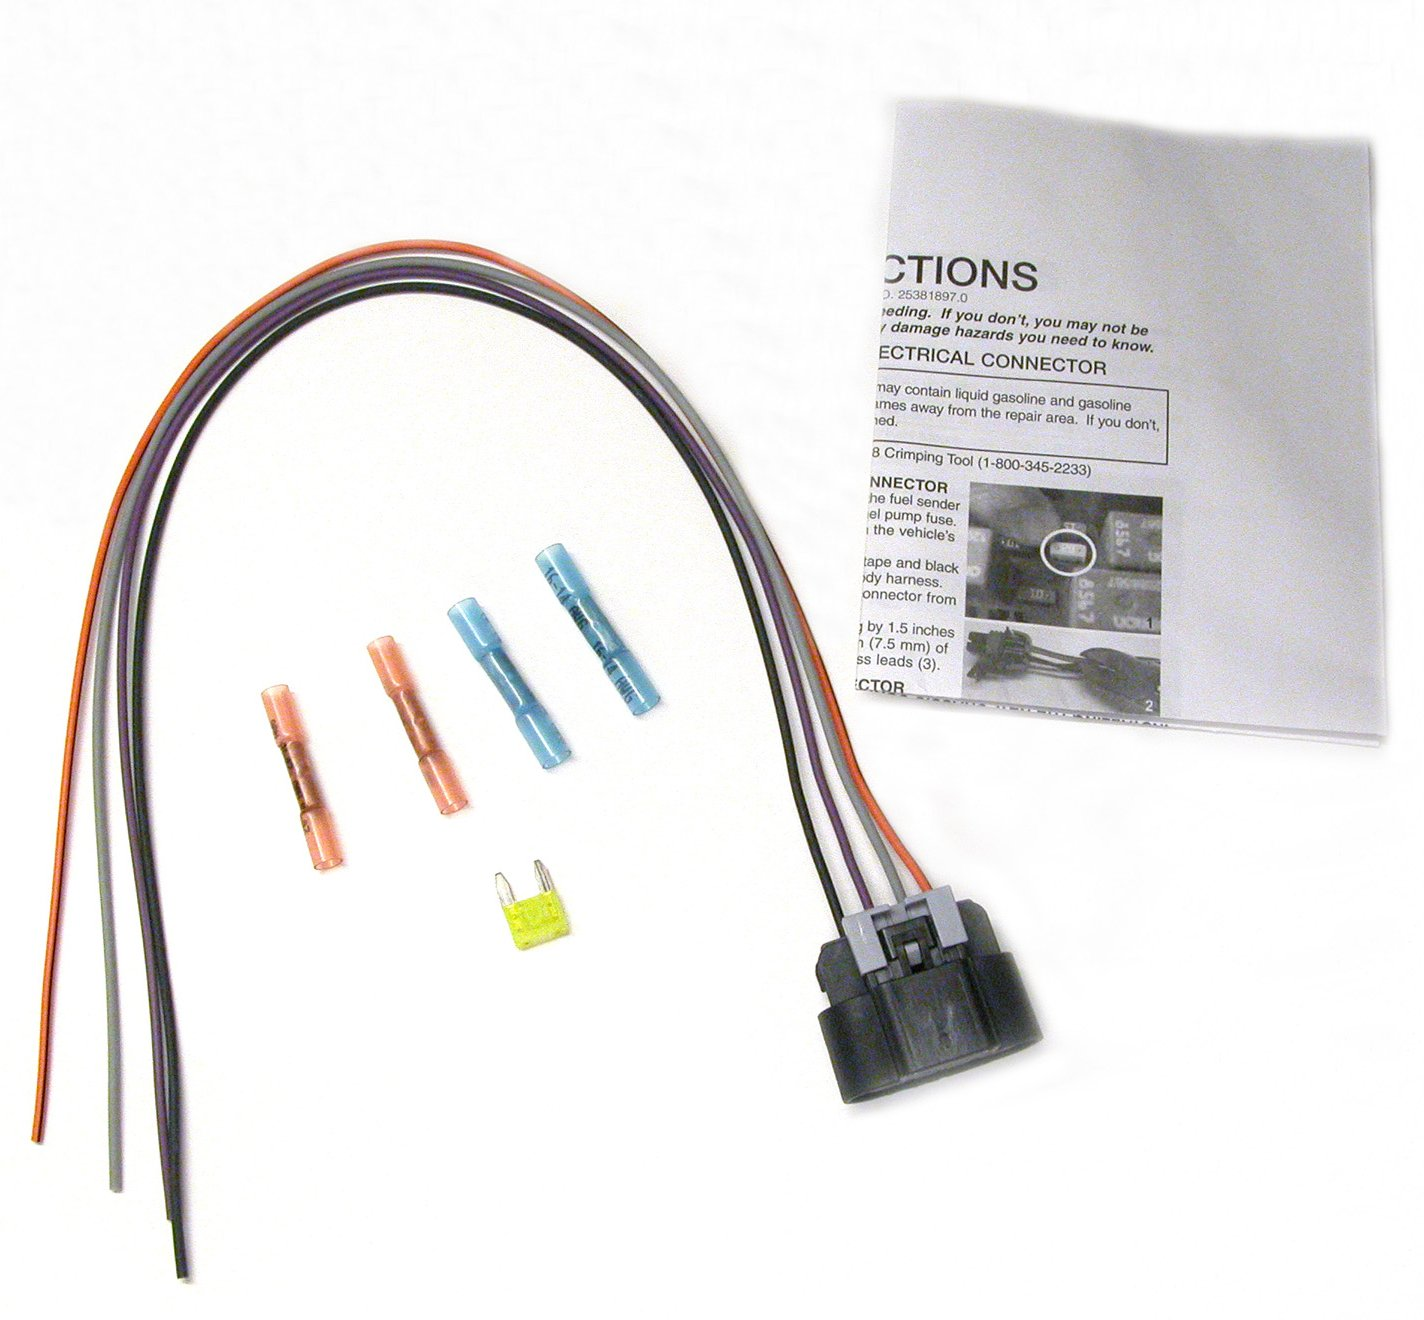 71Grf8PrFuL._SL1424_ amazon com delphi fa10003 fuel pump wiring harness automotive Wire Single Life 4 Harnesstionships at arjmand.co